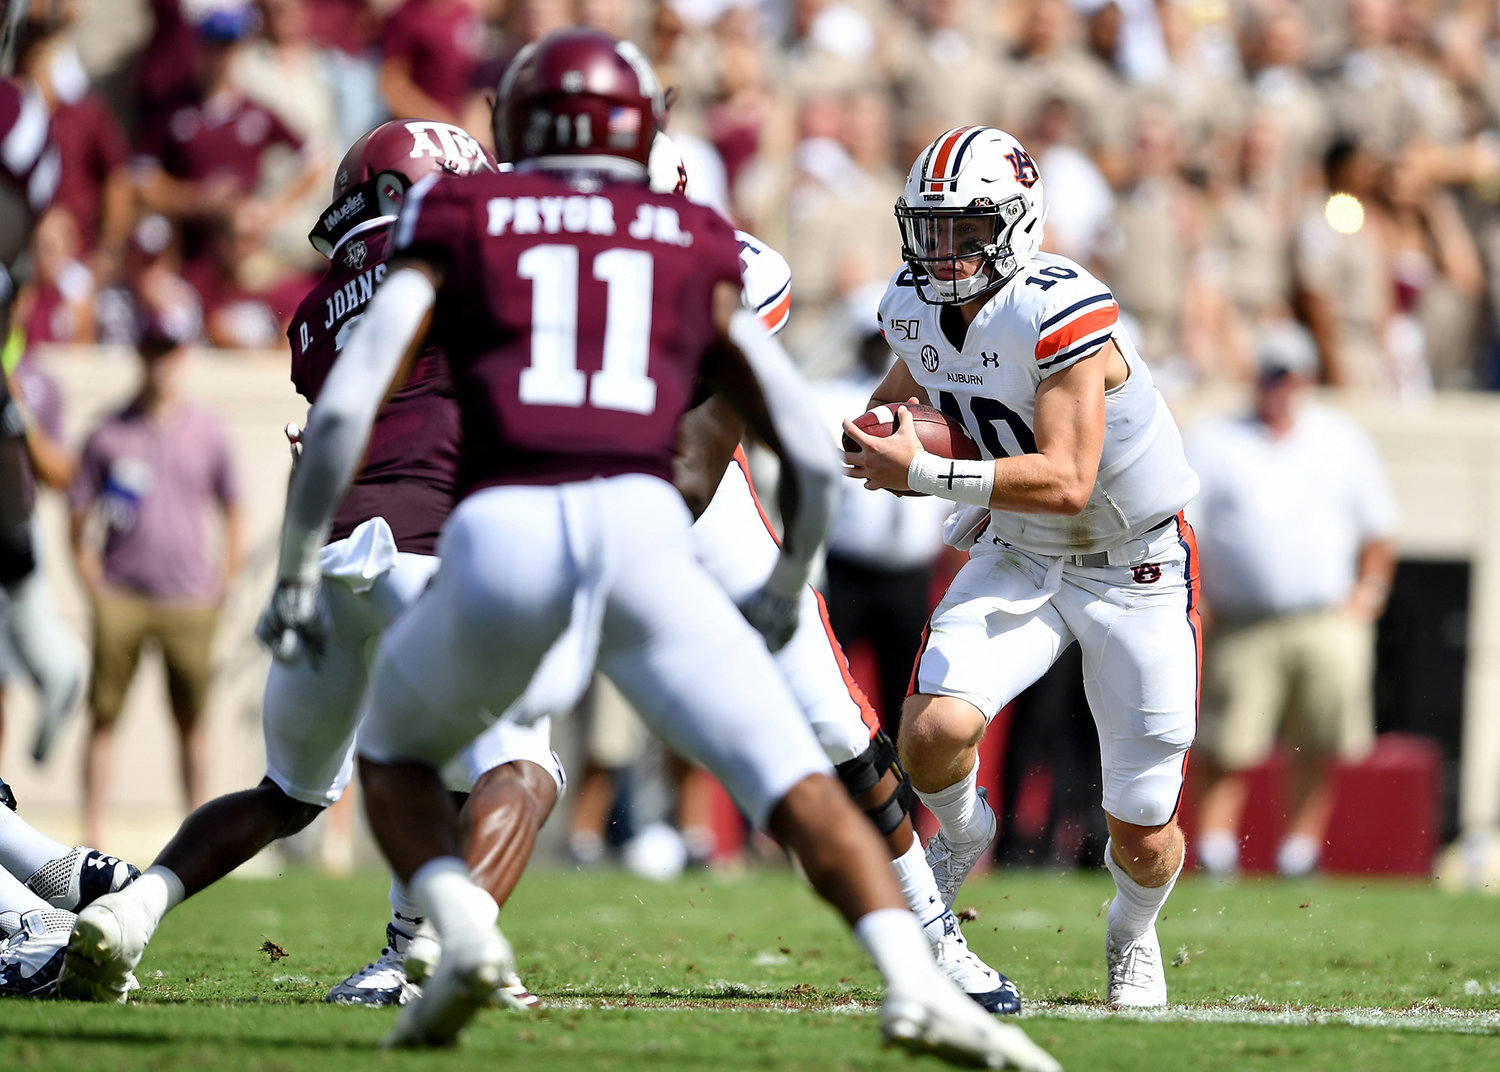 Auburn Tigers quarterback Bo Nix (10) looks for room to run with a quarterback keeper during the first half of an NCAA football game against the Texas A&M Aggies Saturday, Sept. 21, 2019, at Kyle Field in College Station Texas. Auburn wins 28-20.